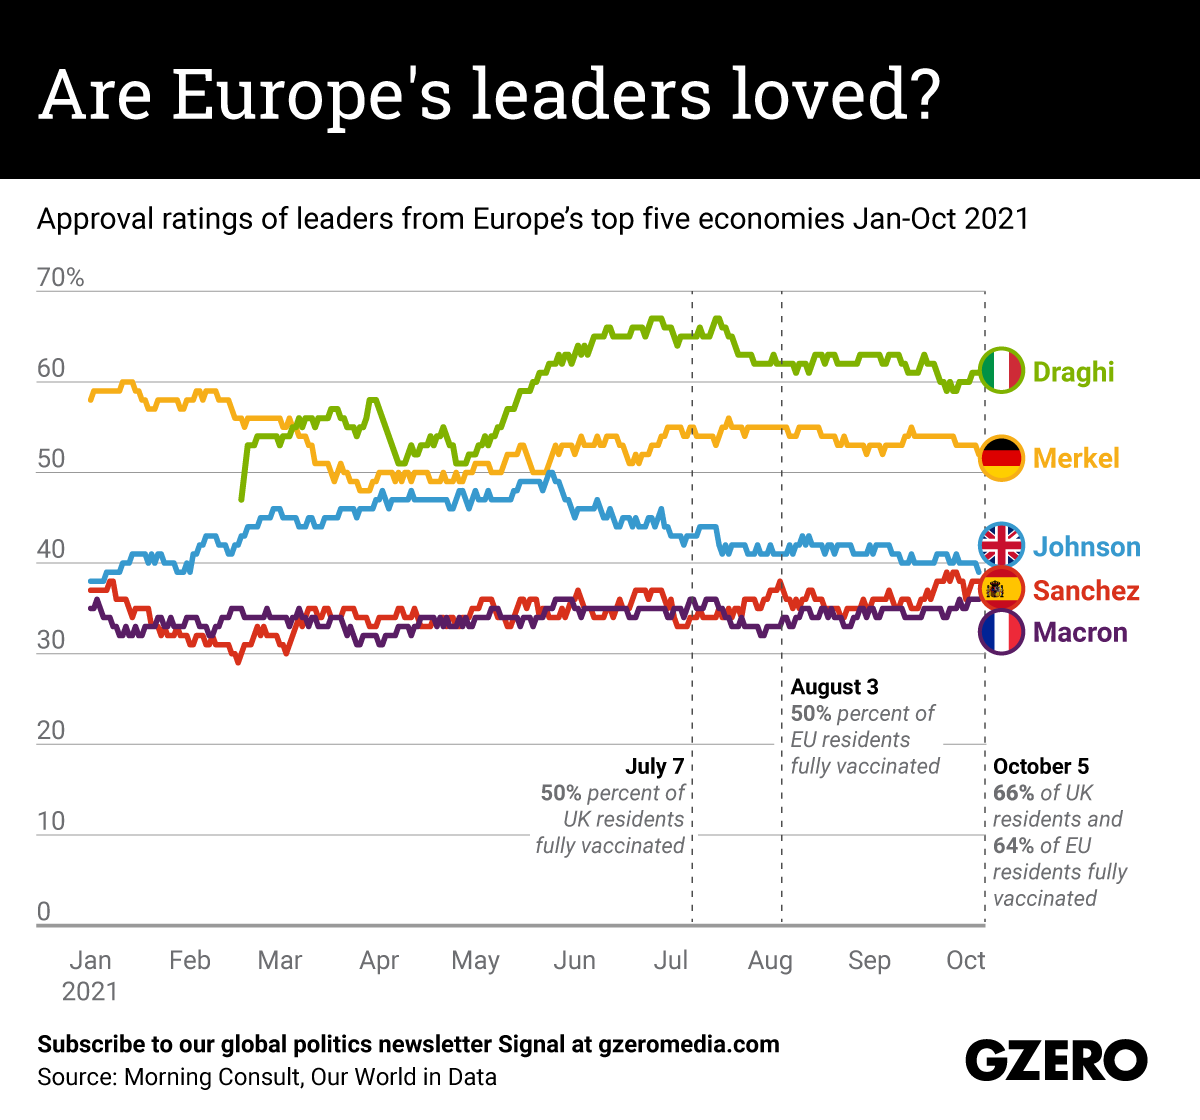 Approval ratings of leaders from Europe's top five economies Jan-Oct 2021